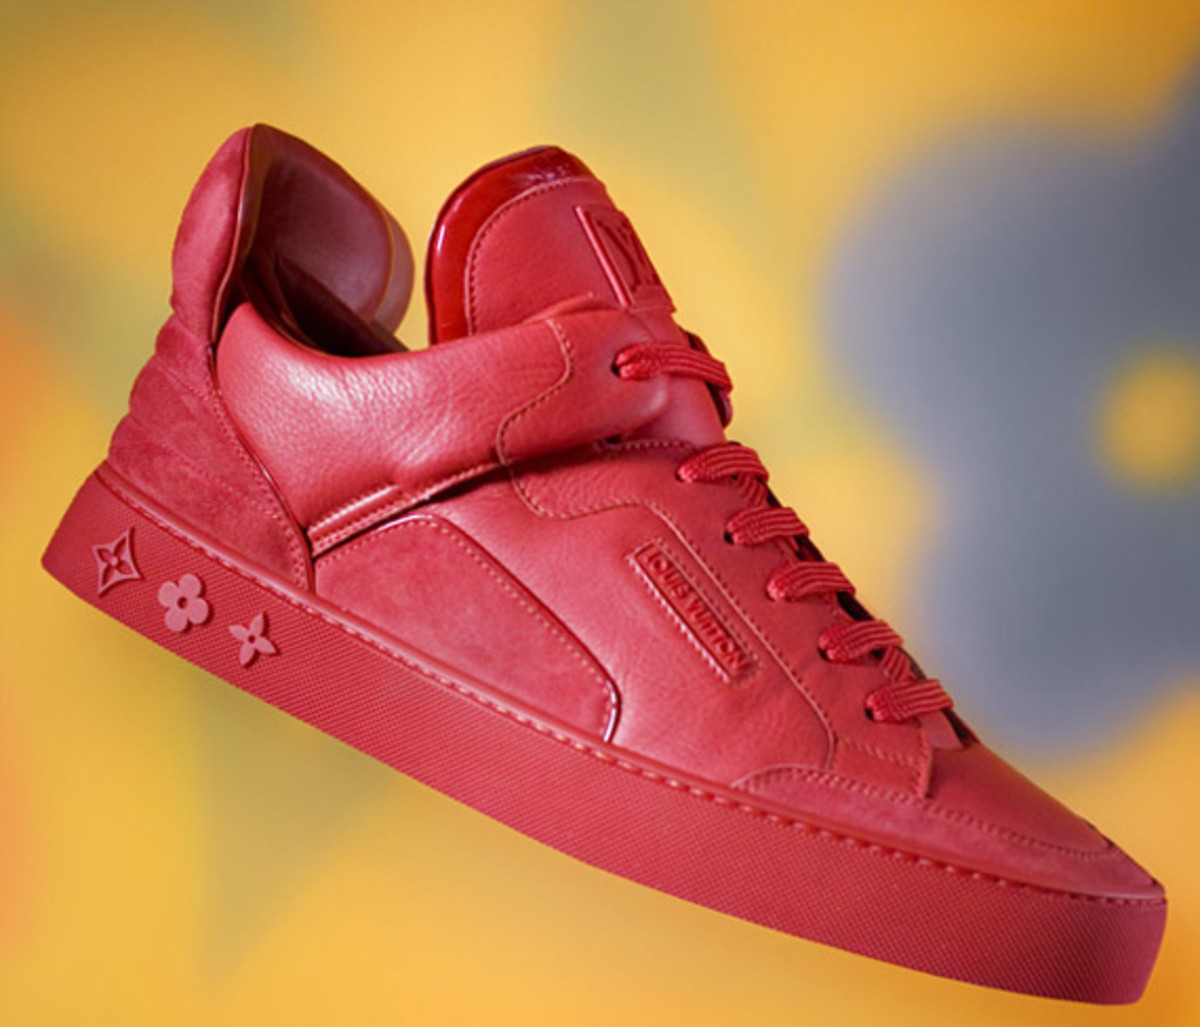 louis-vuitton-x-kanye-west-sneakers-preview-6